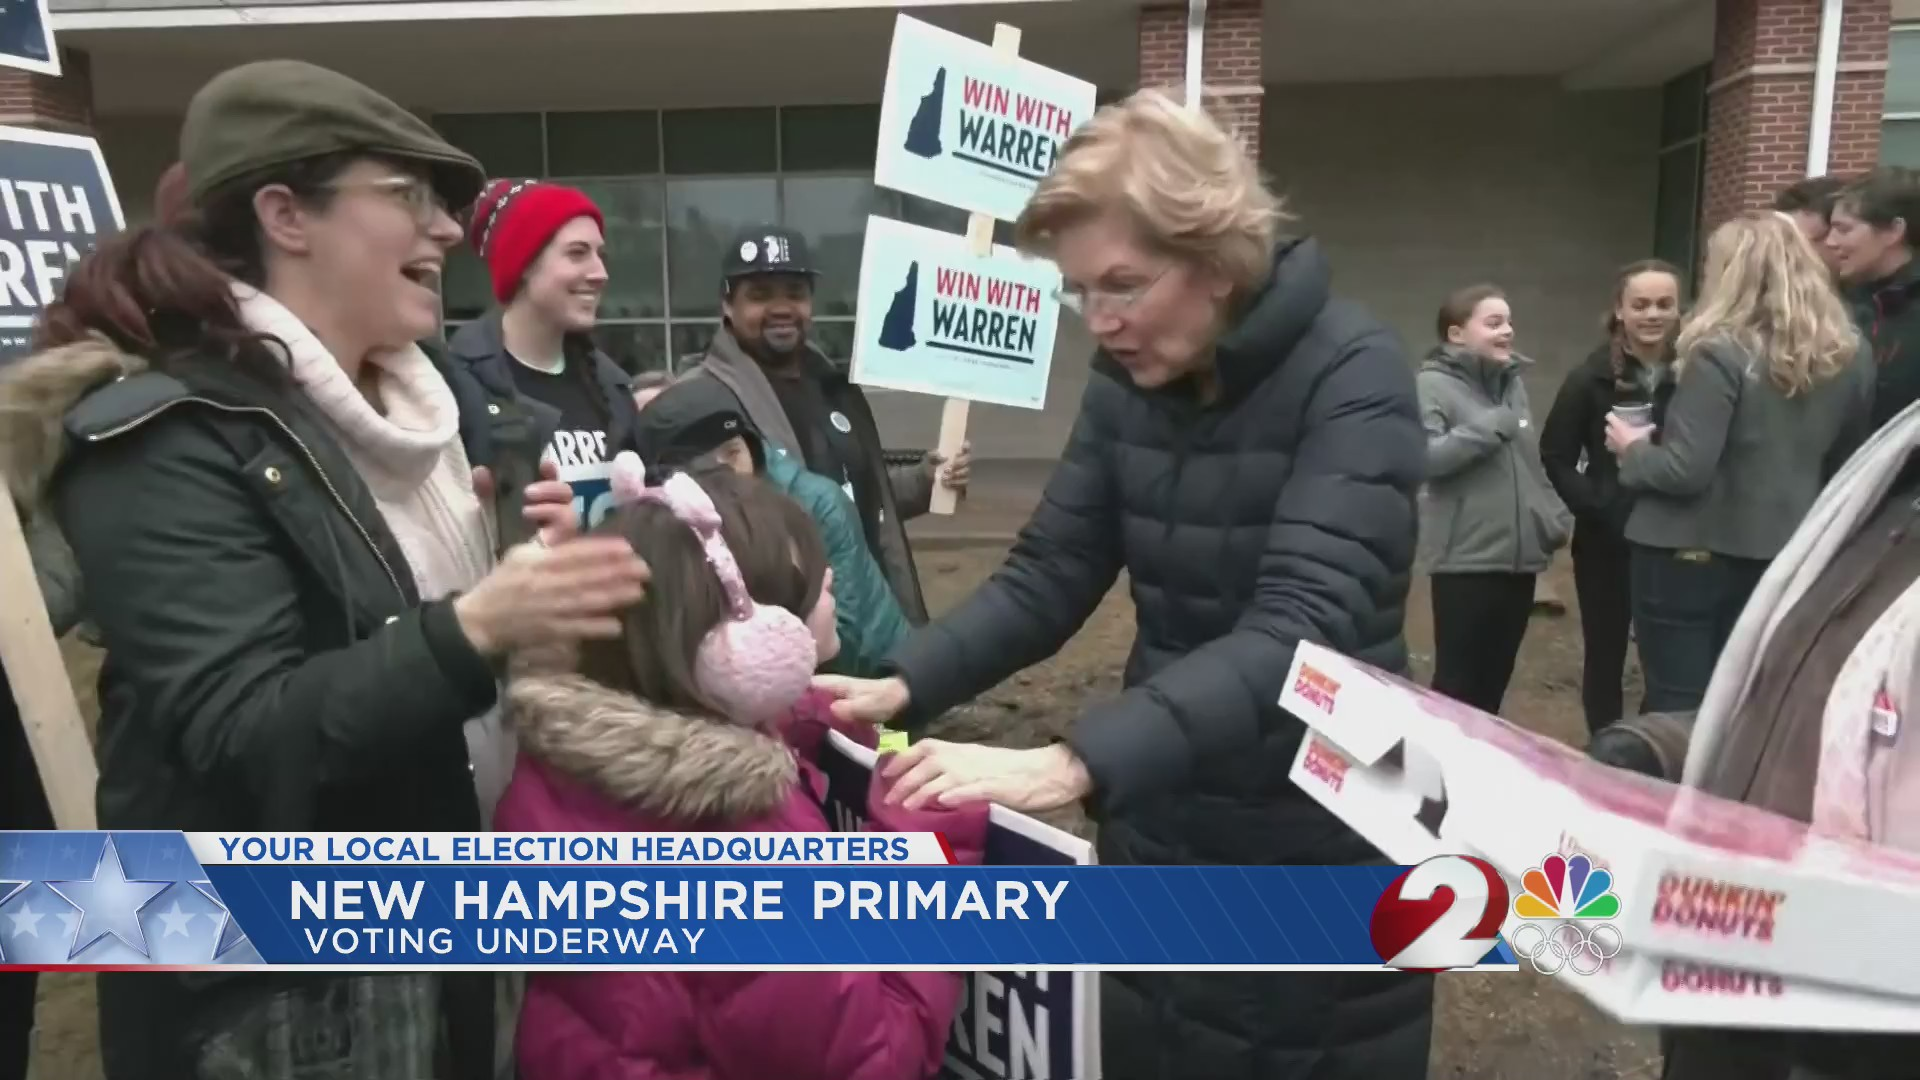 New Hampshire primary now underway